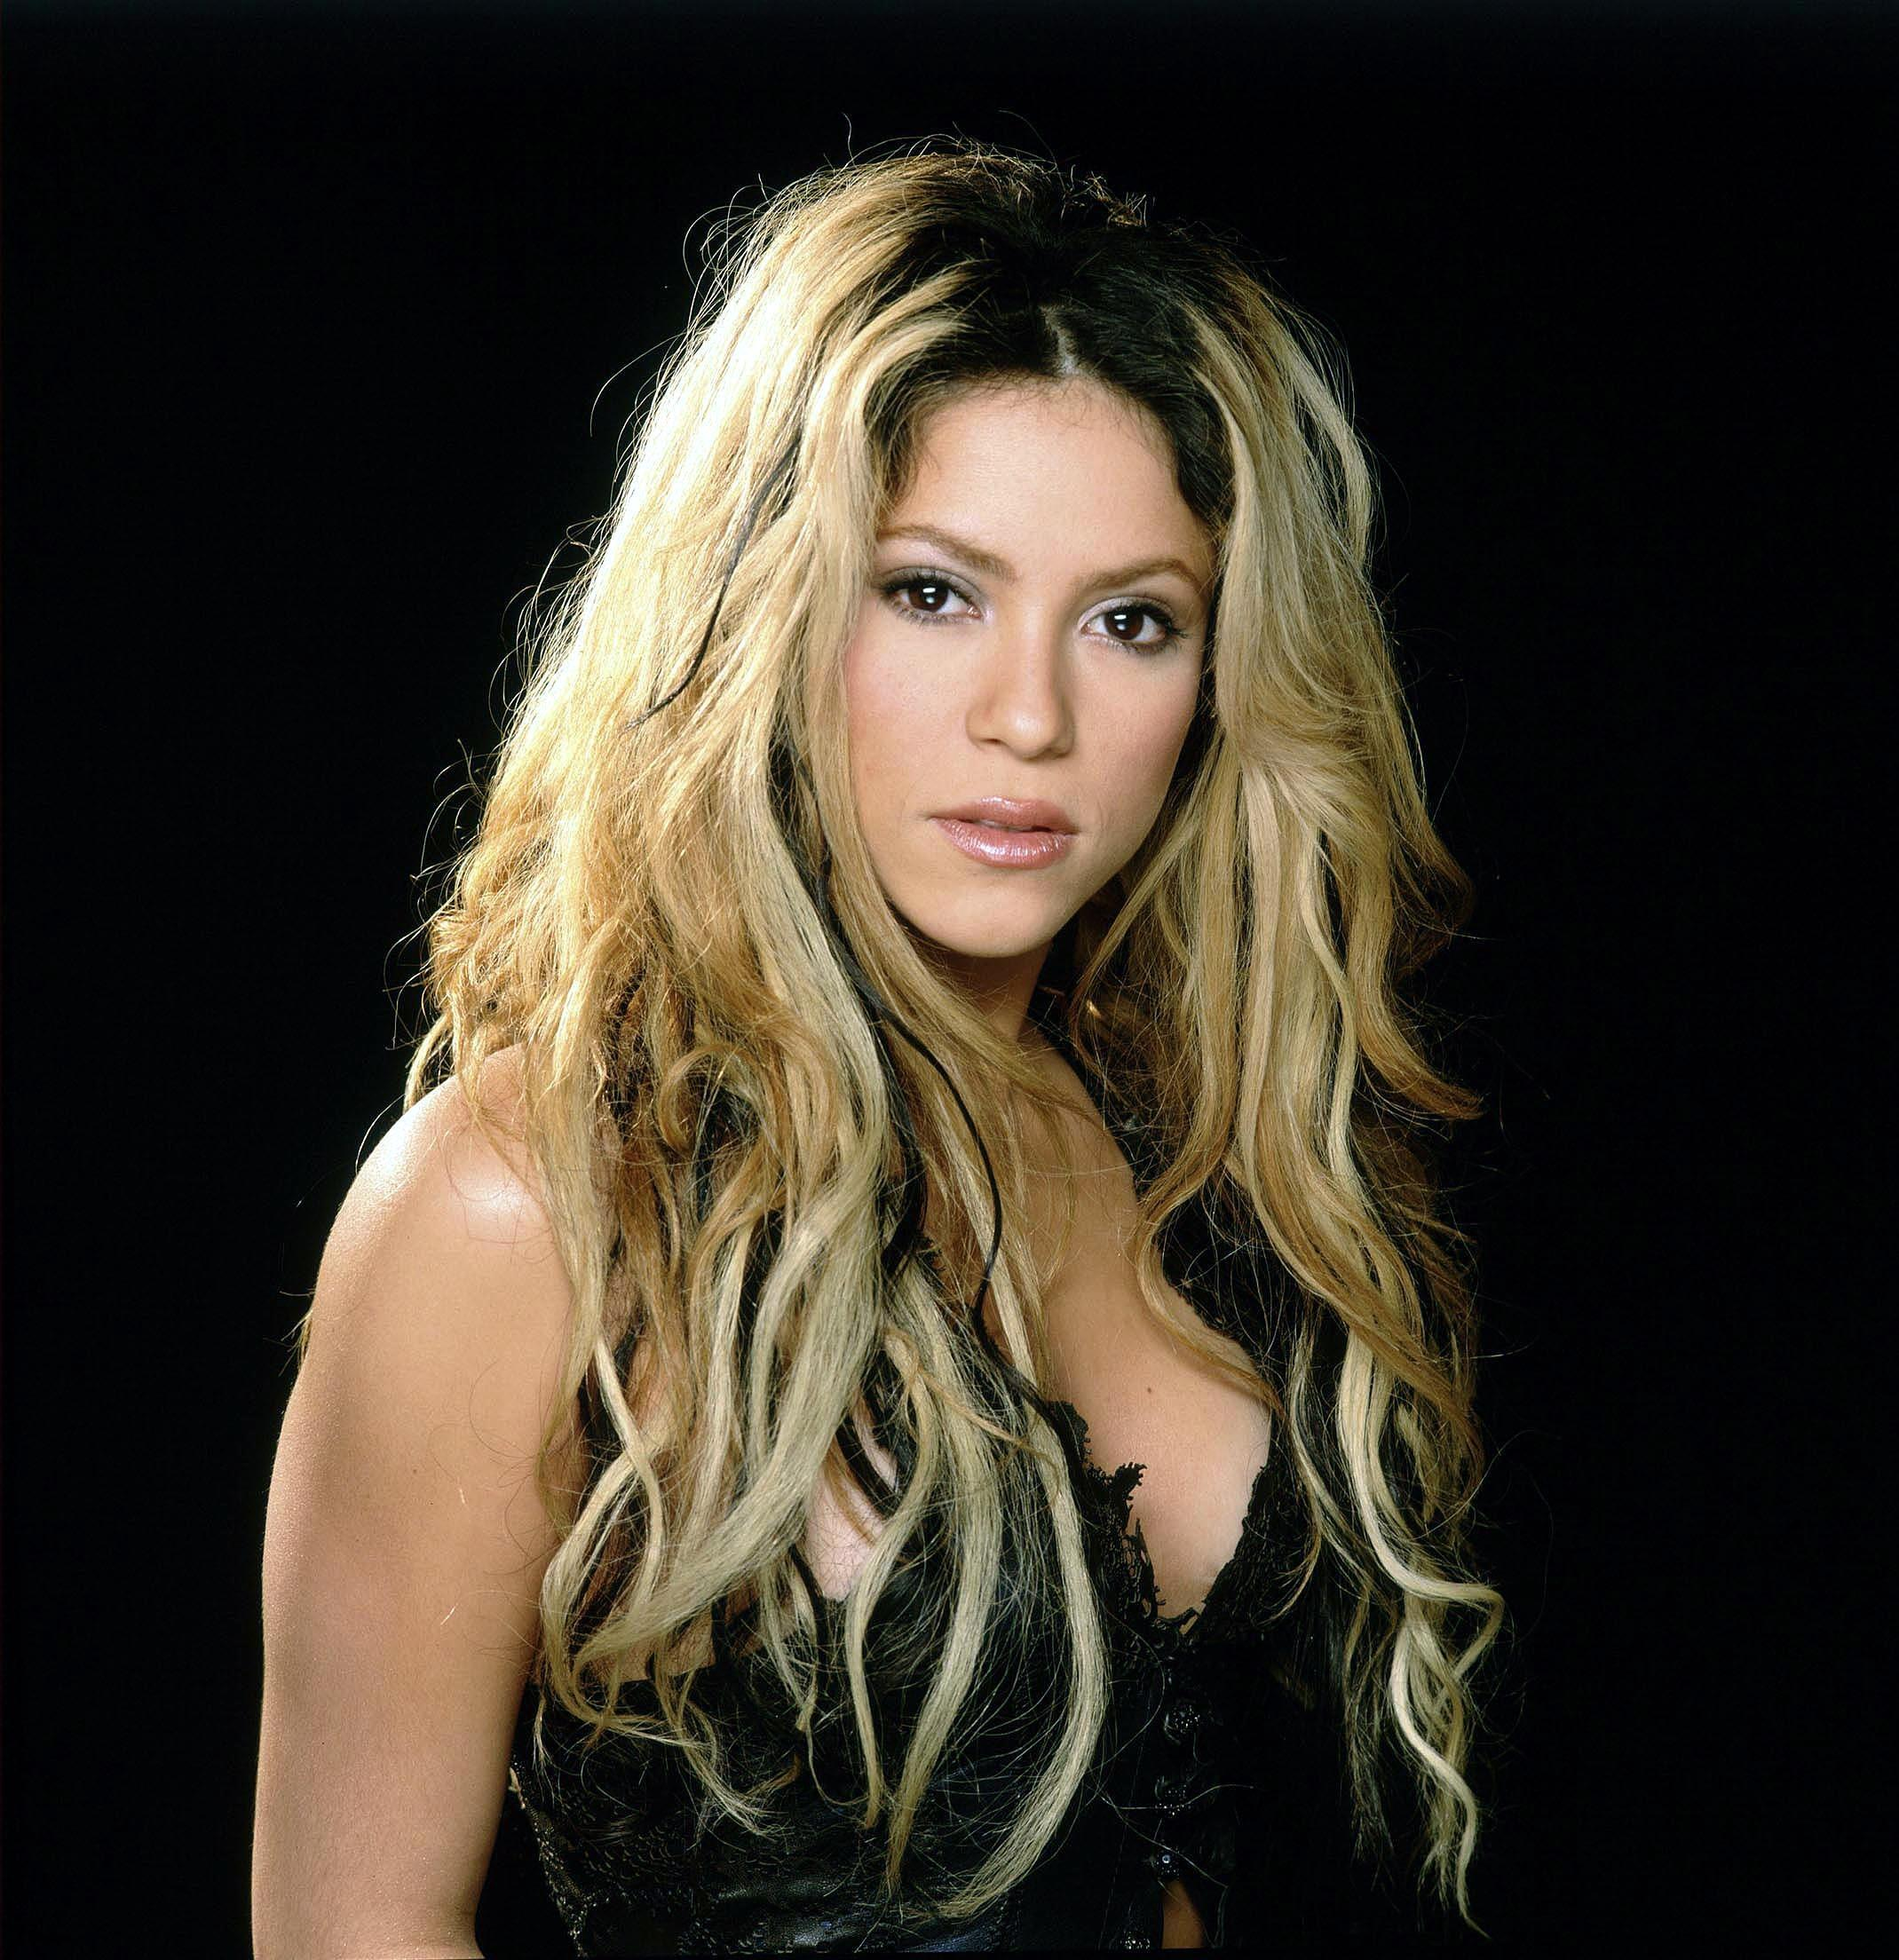 the biography of shakira The shakira biography begins on february 2, 1977, in barraquilla, colombia, when shakira isabel mebarak ripoll was born she claims spanish, italian and lebanese roots, and this family influence would go on to be evident in her music.